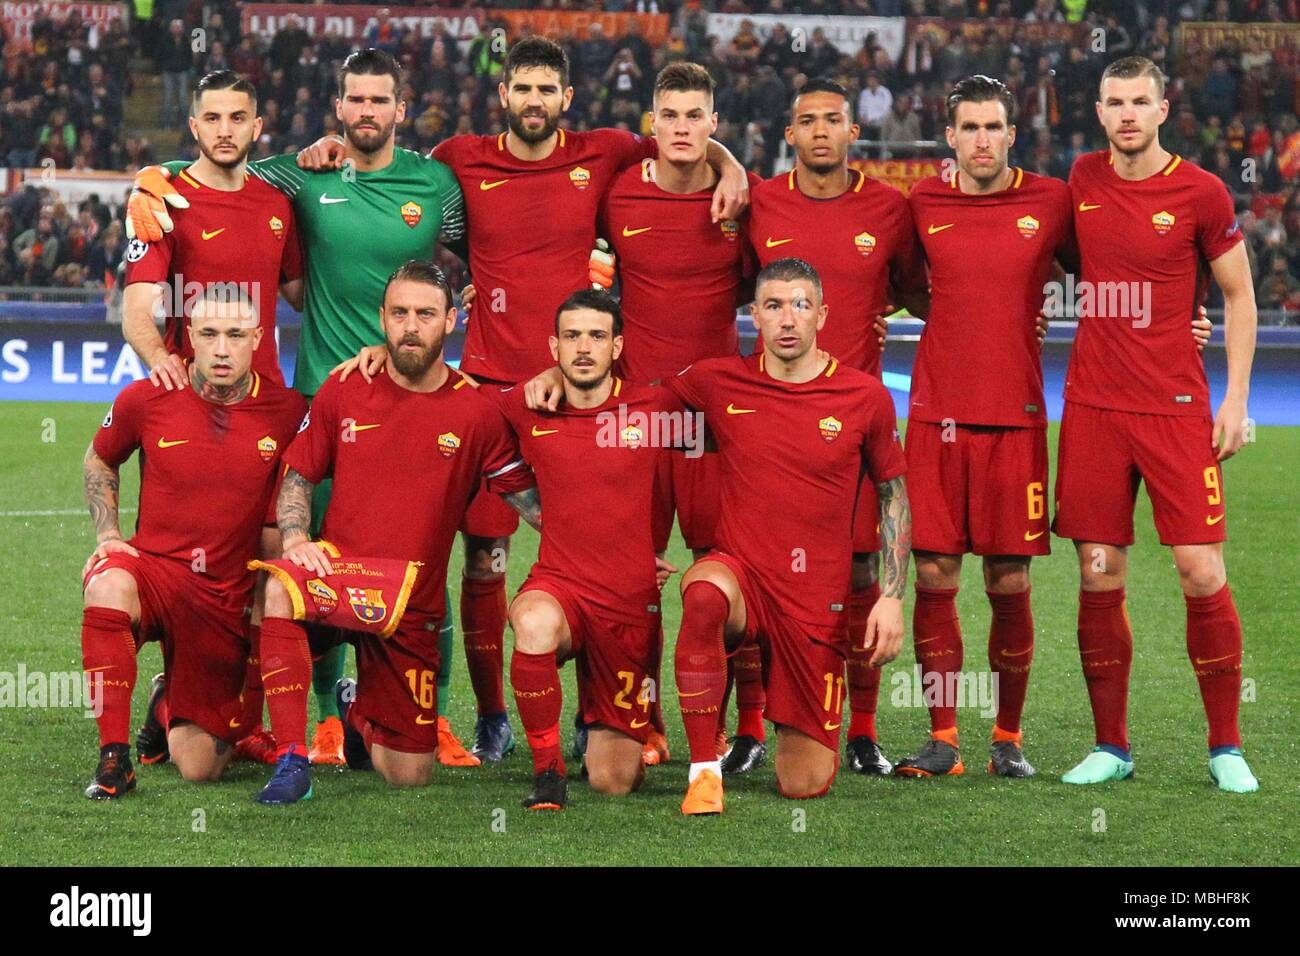 55d92b52 As Roma Players during fotball match UEFA Champions League football,  quarter final, second leg; AS Roma versus FC Barcelona; at the Olimpic  Stadium in Rome.